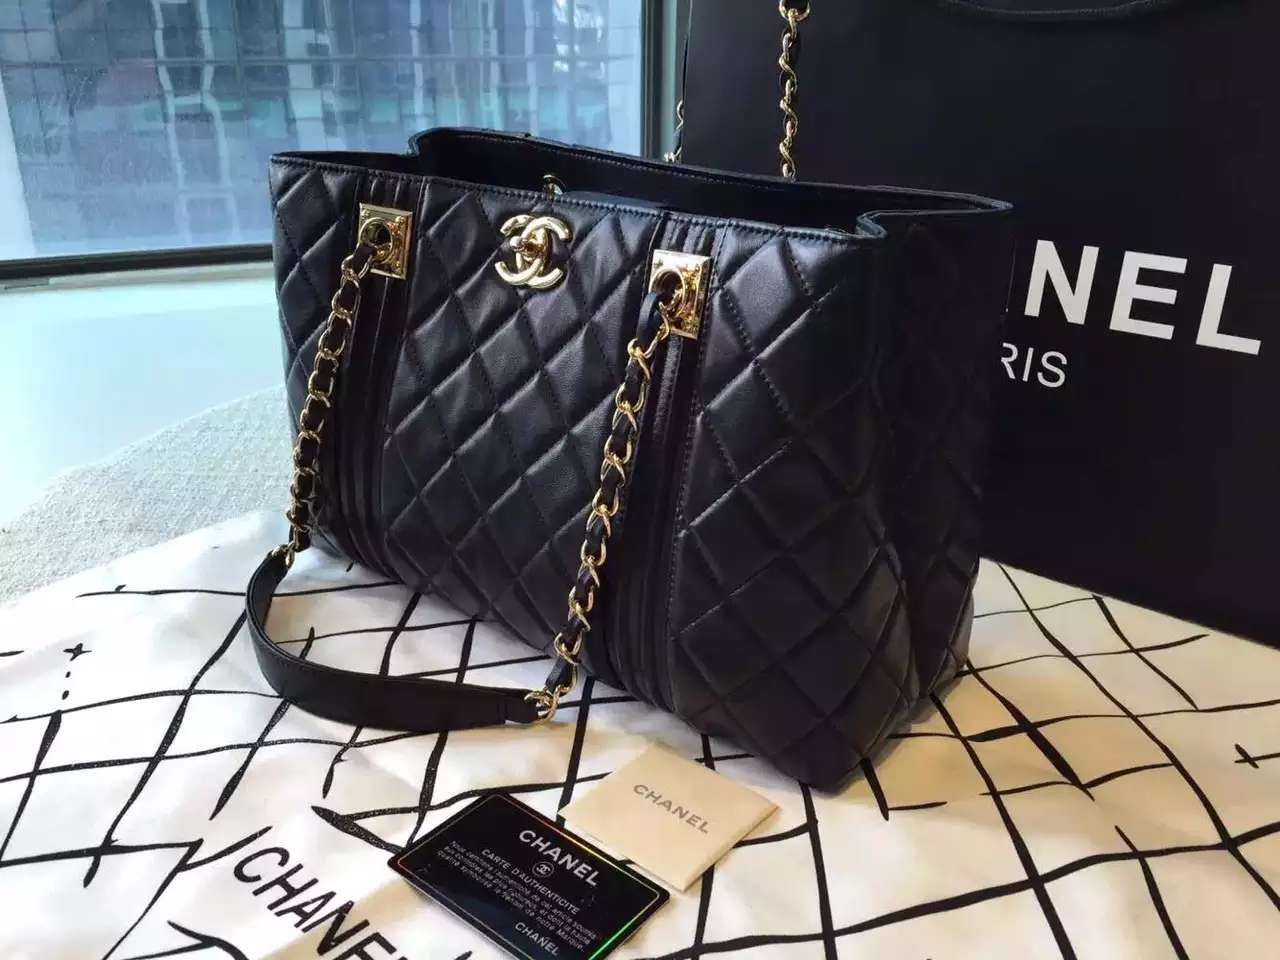 chanel Bag, ID : 38360(FORSALE:a@yybags.com), shop chanel purse, chanel bag buy, chanel com handbags, chanel buy online, e shop chanel, chanel travel handbags, chanel external frame backpack, chanel brown leather briefcase, buy chanel handbag online, chanel bridal handbags, chanel wallet brands, www chanel com handbags 2016 #chanelBag #chanel #chanel #boutique #label